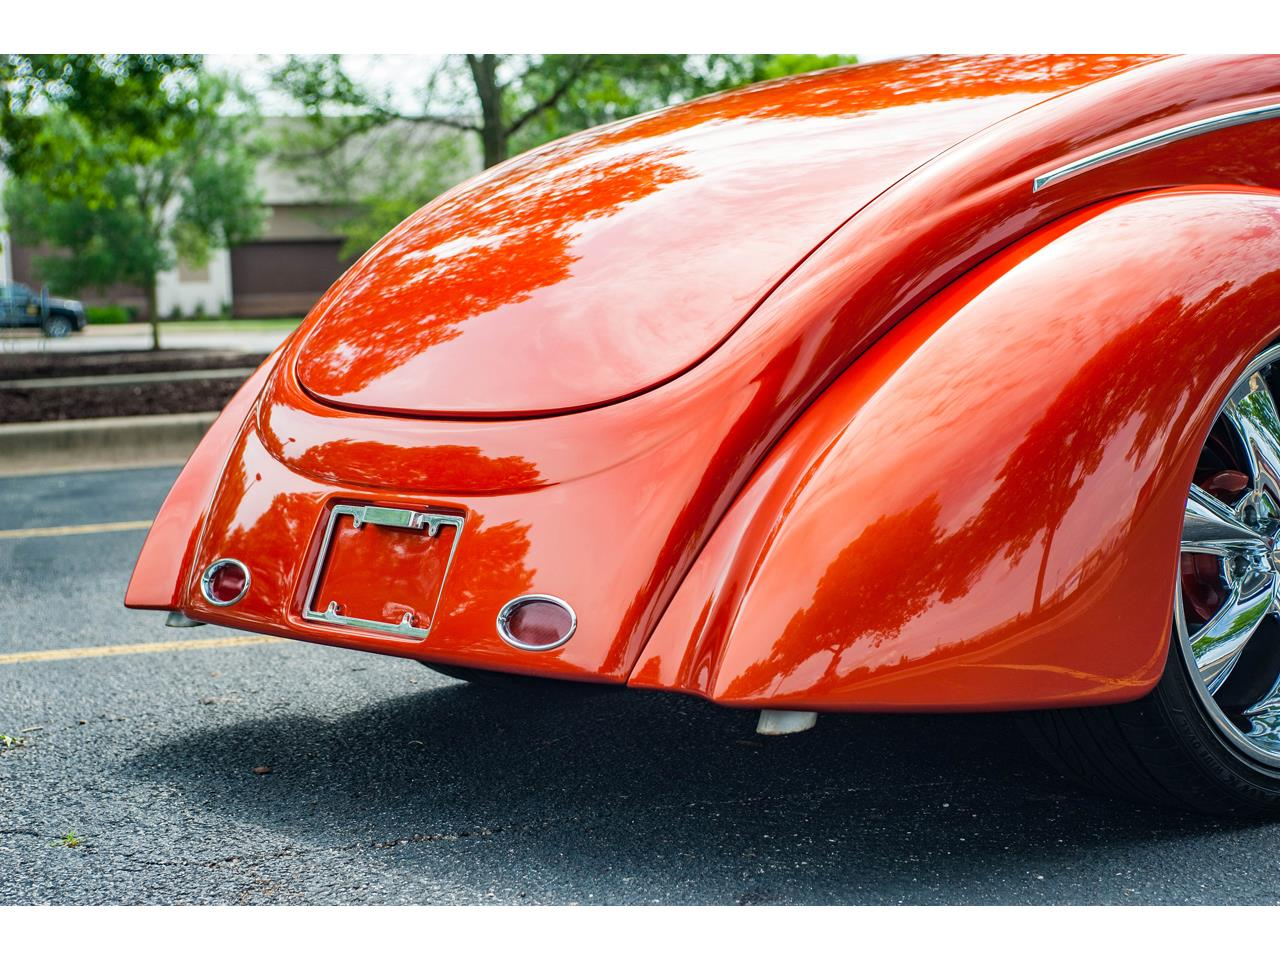 Large Picture of Classic '36 Ford Roadster located in O'Fallon Illinois - $117,000.00 Offered by Gateway Classic Cars - St. Louis - QB9T